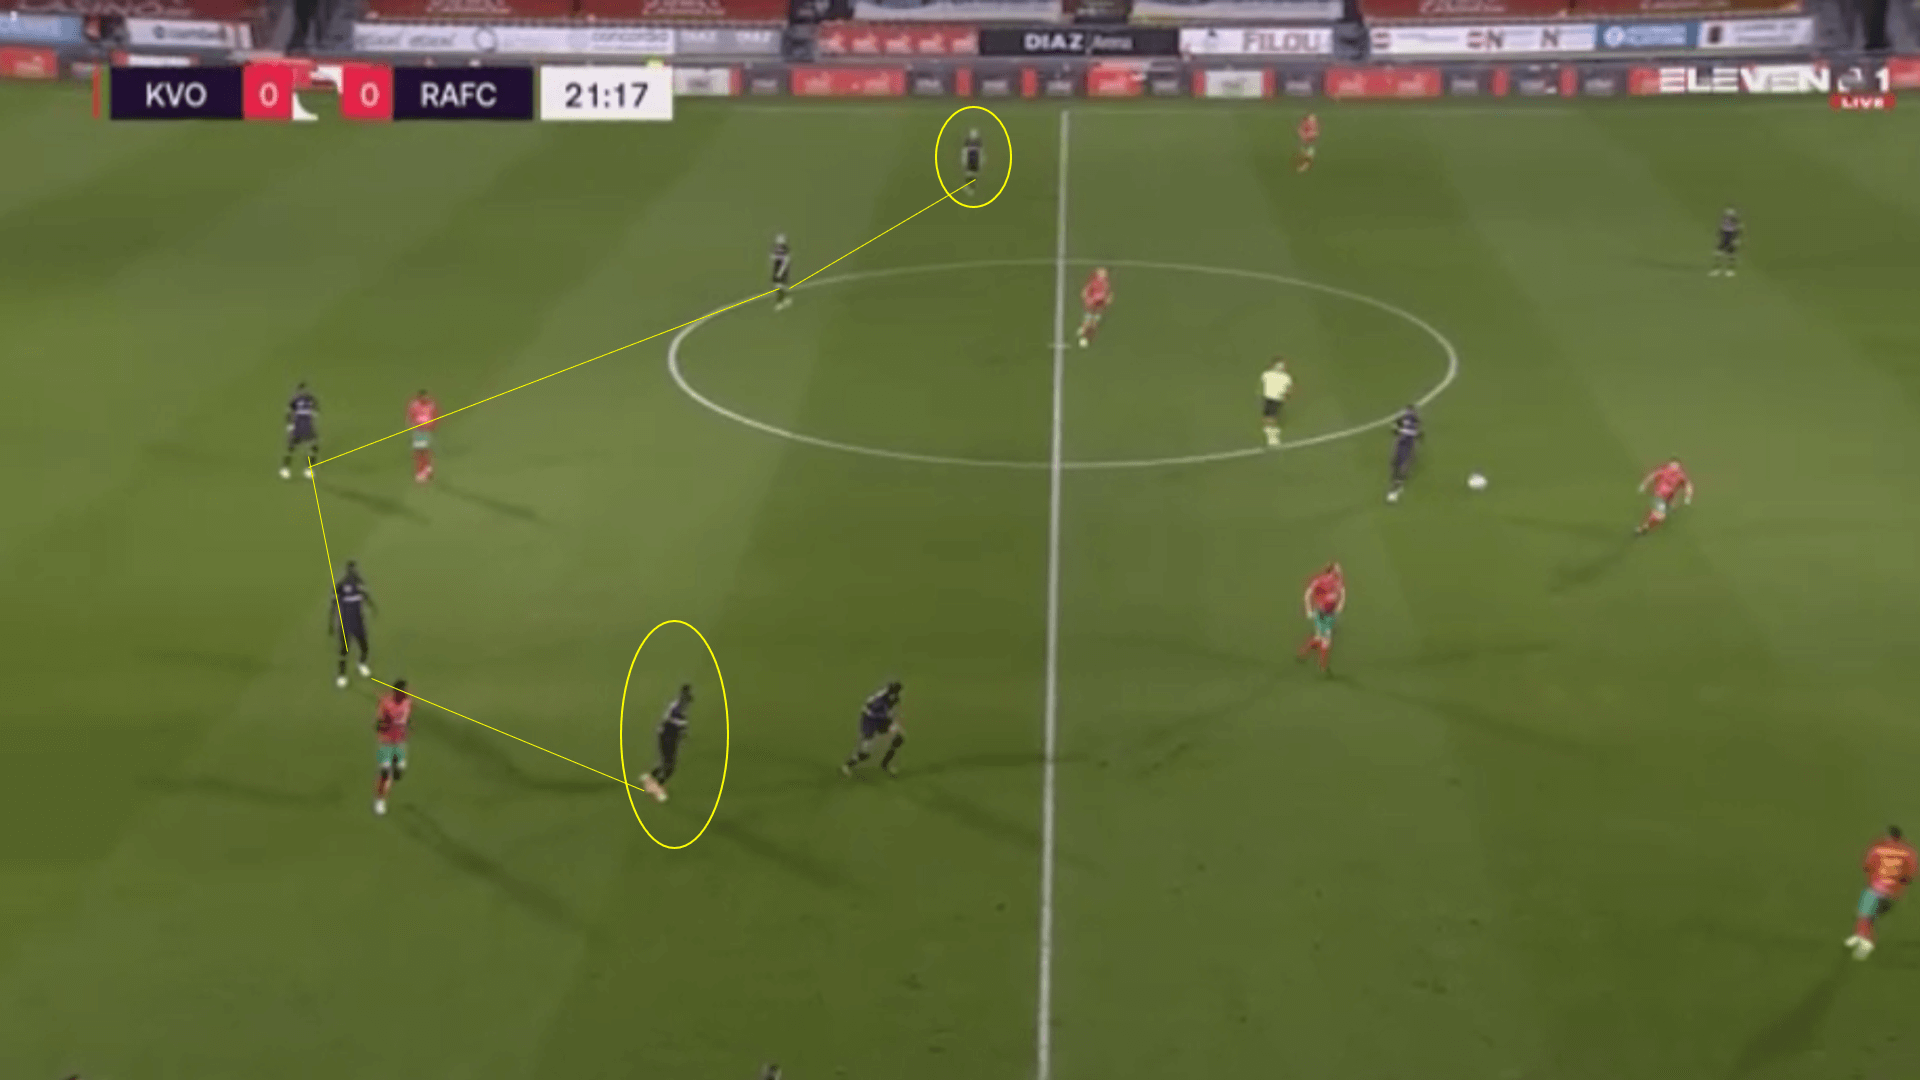 Belgian Pro League 2020/21 - Oostende v Antwerp - tactical analysis tactics